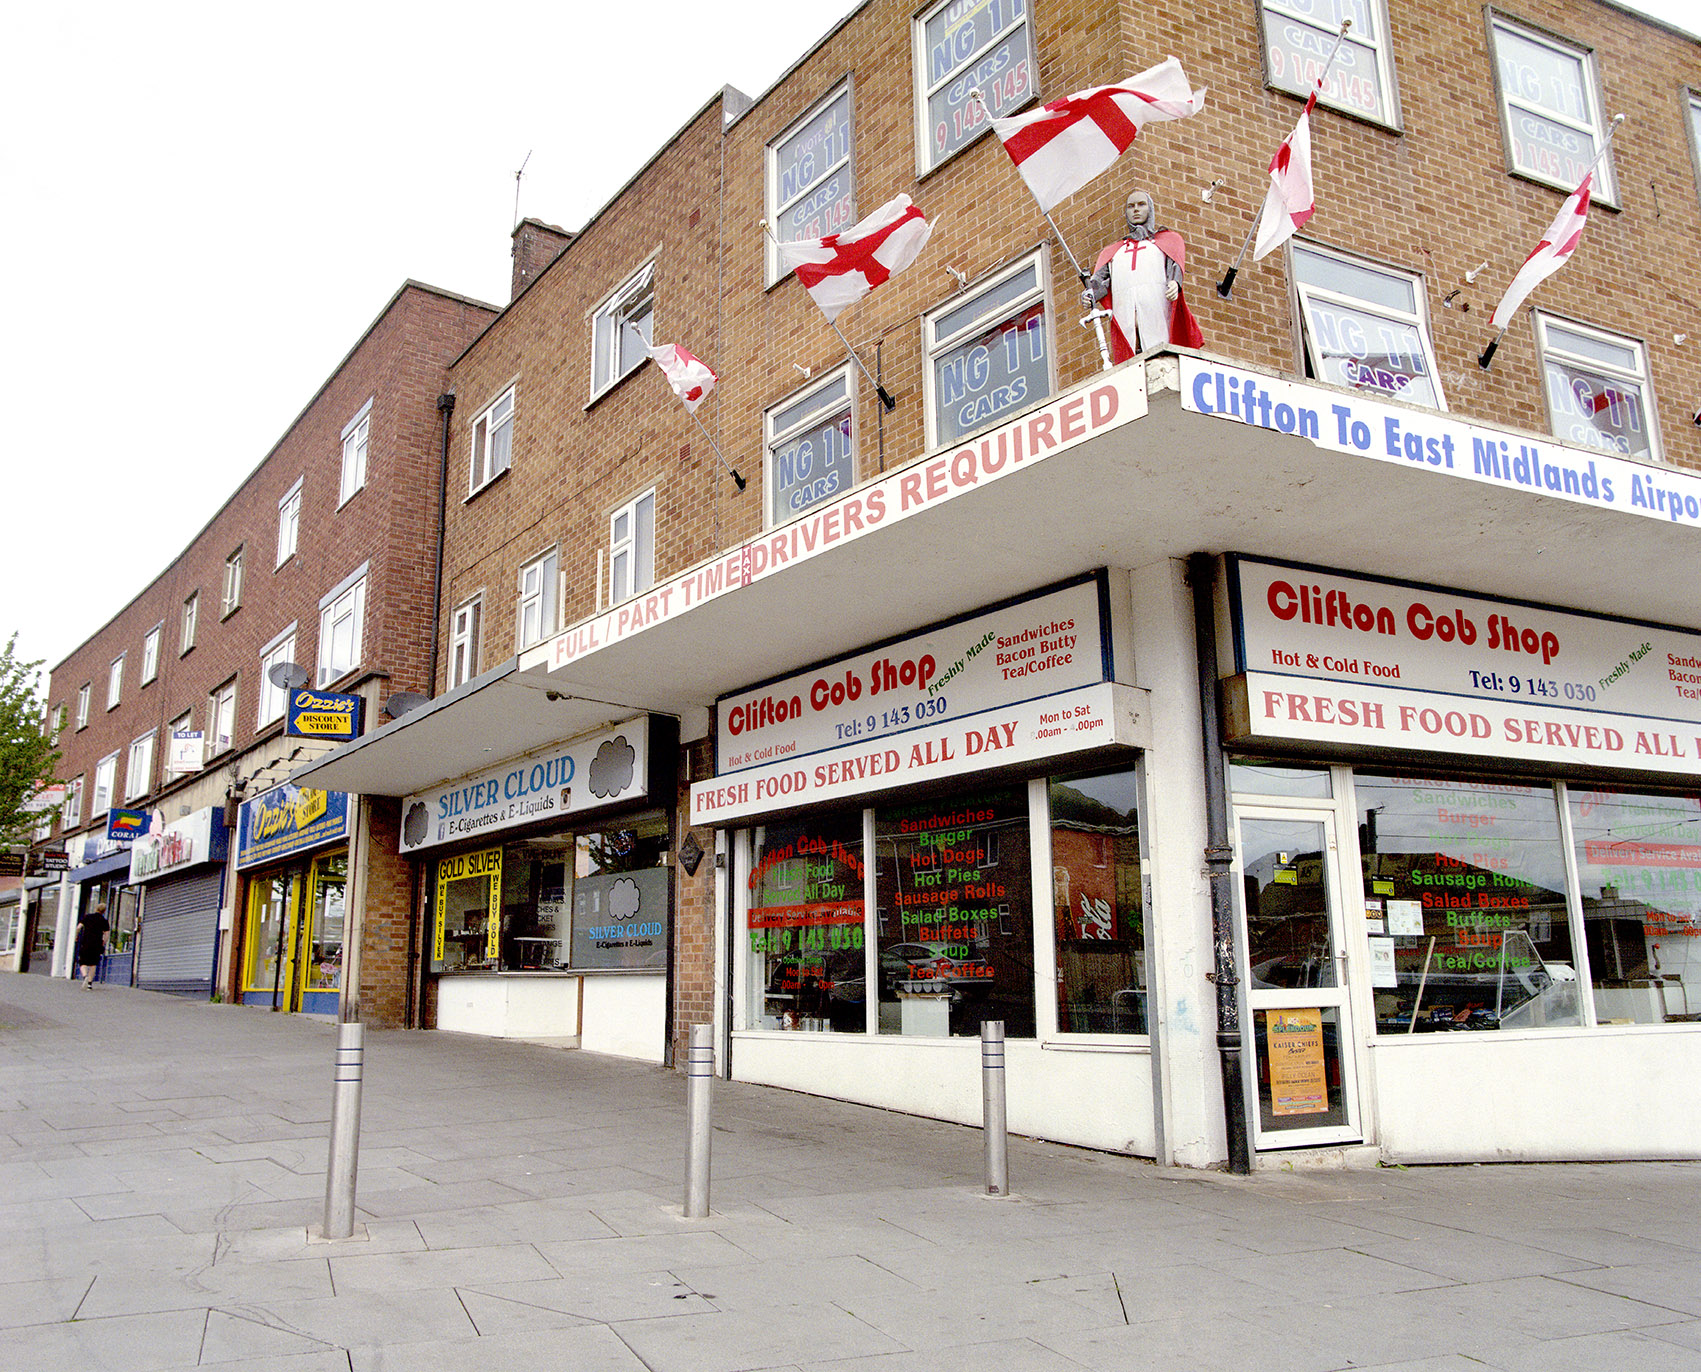 Image of a row of shops with a chip shop in the foreground